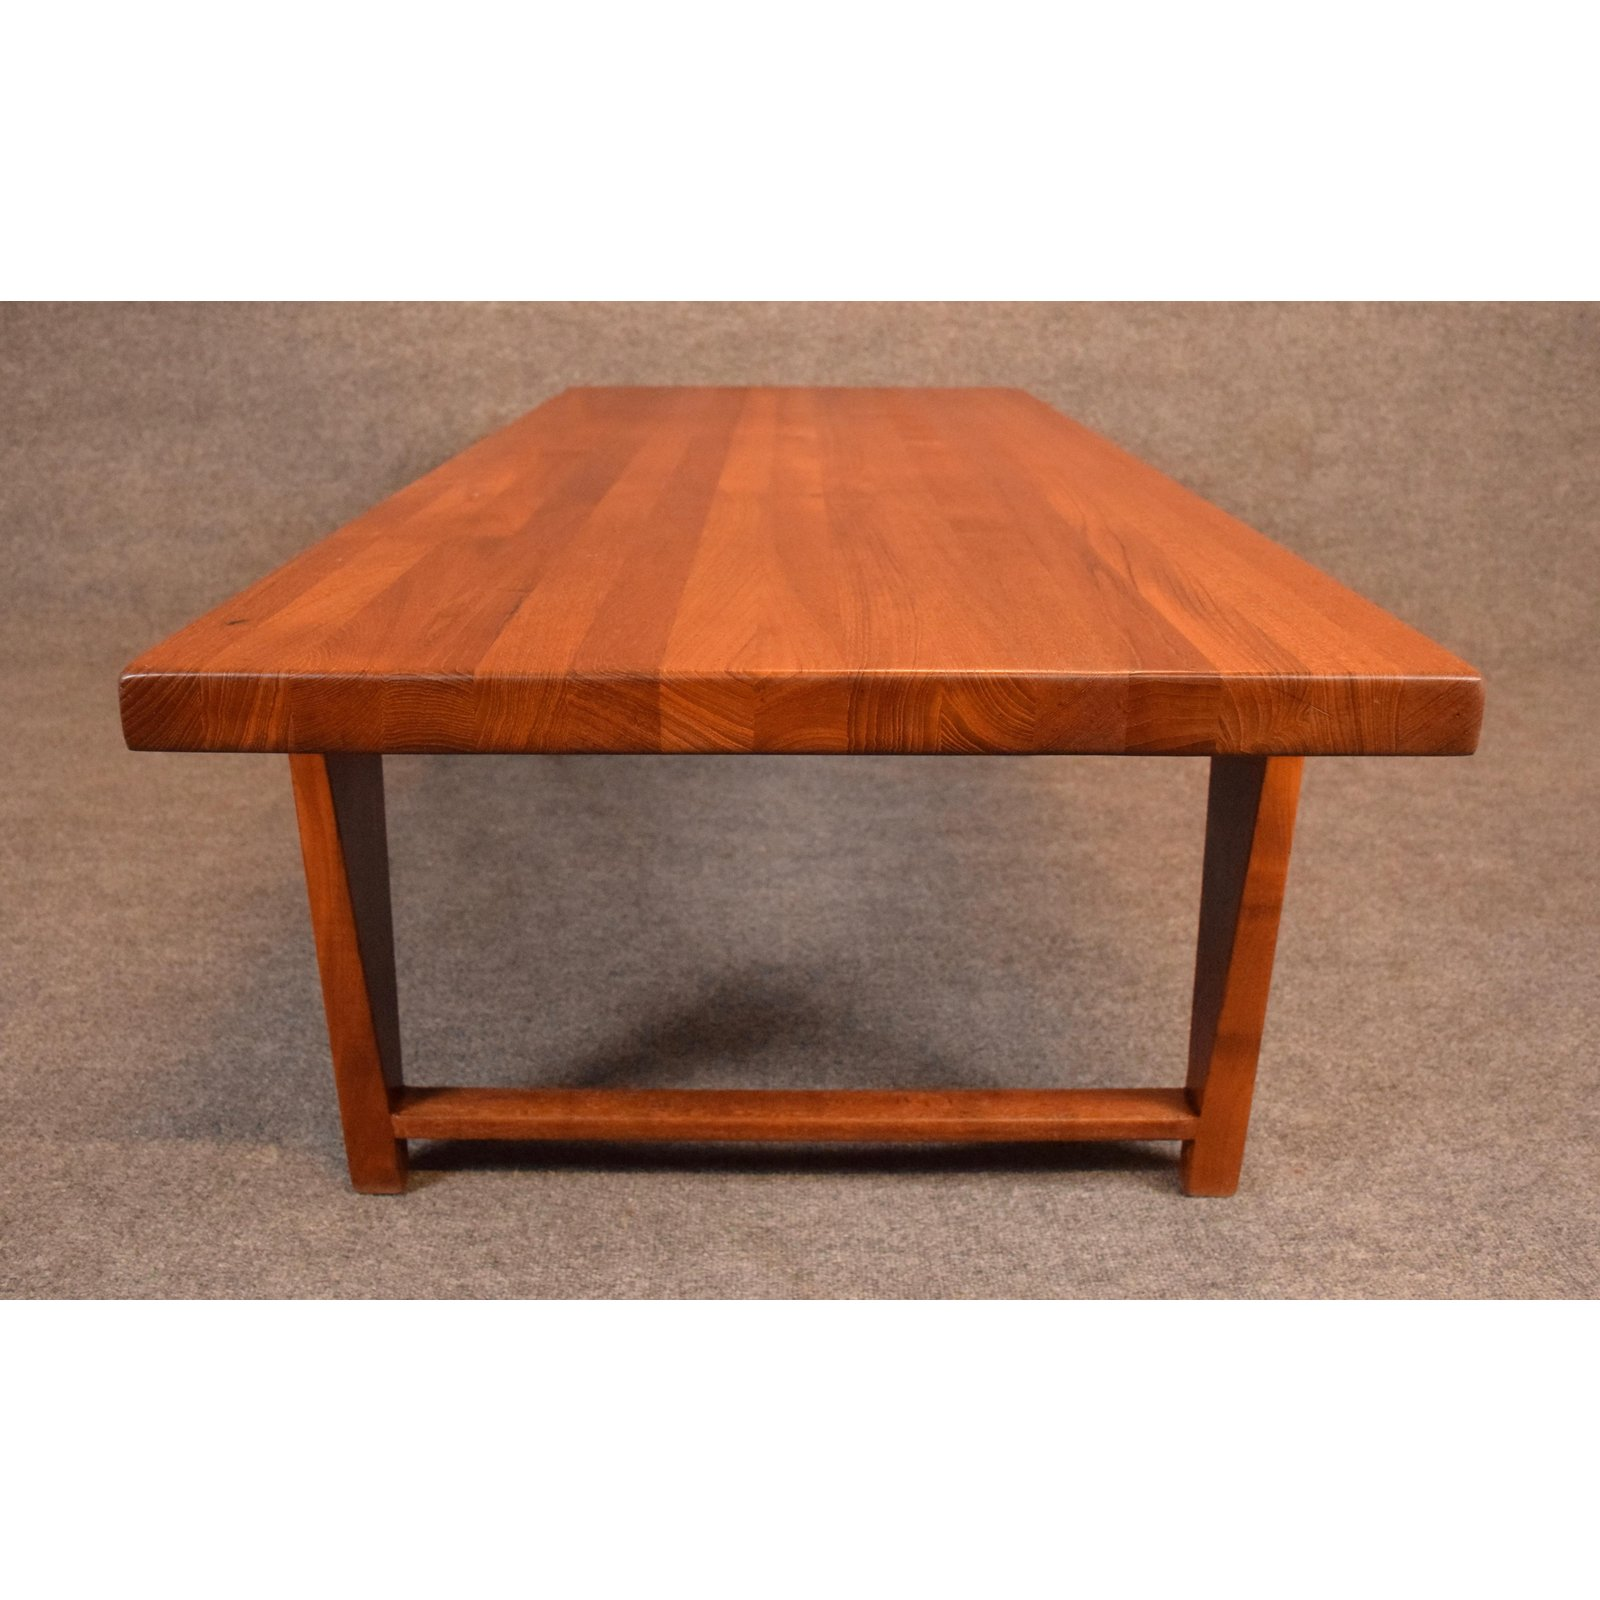 Vintage Danish Mid Century Modern Teak Coffee Table By Illum